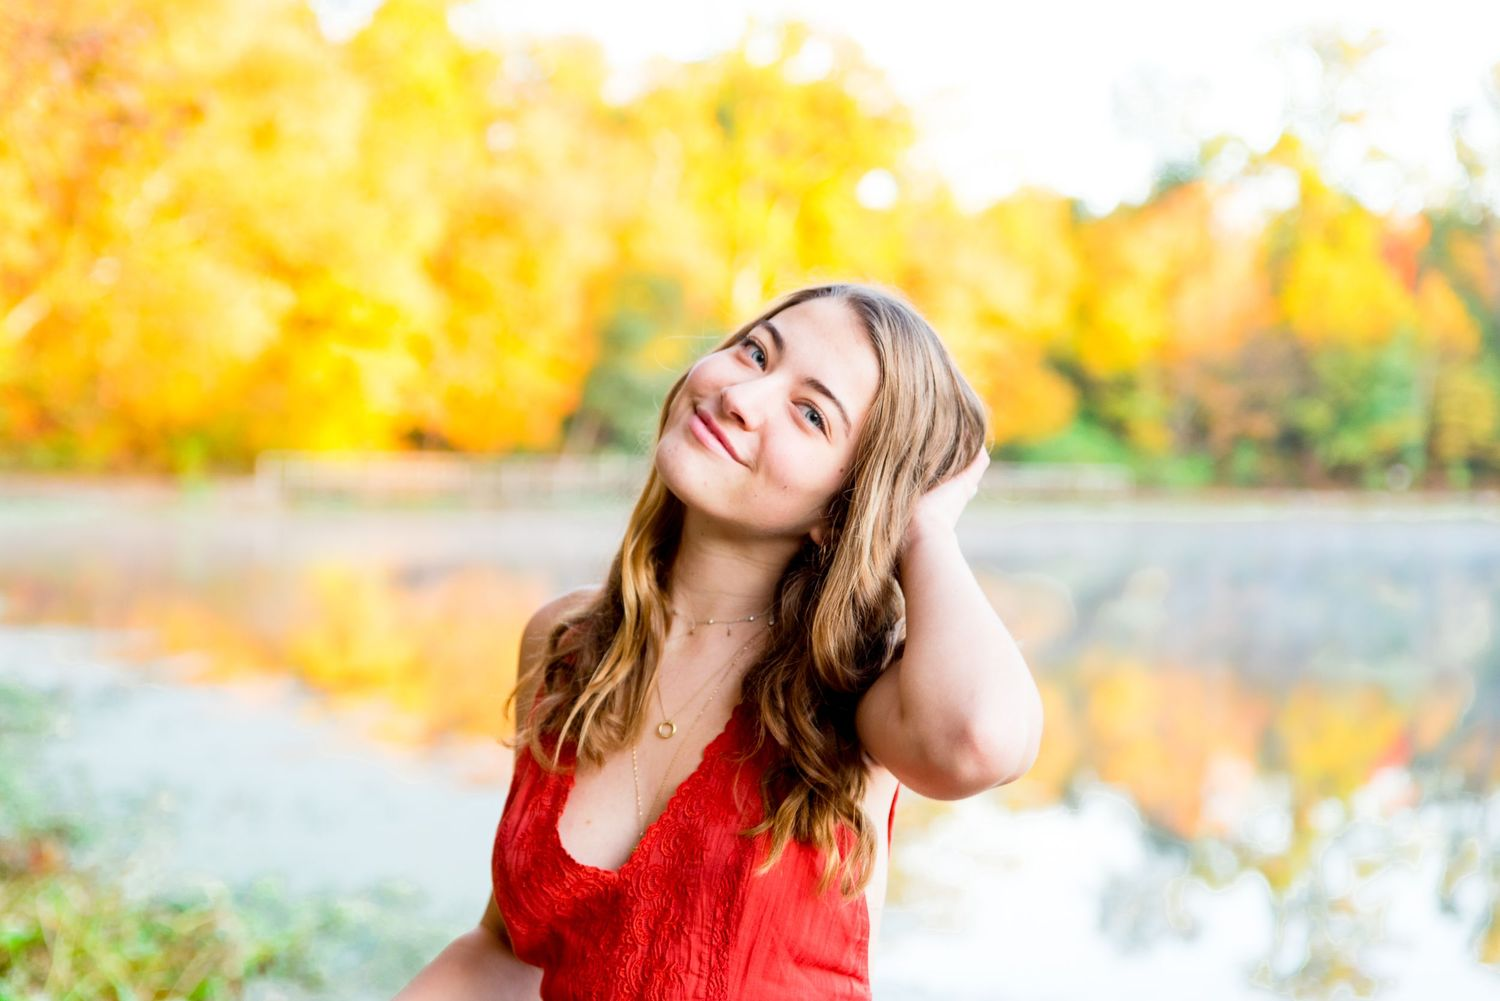 young woman in orange shirt plays with hair and smiles in front of a pond in Chicago with yellow trees behind her